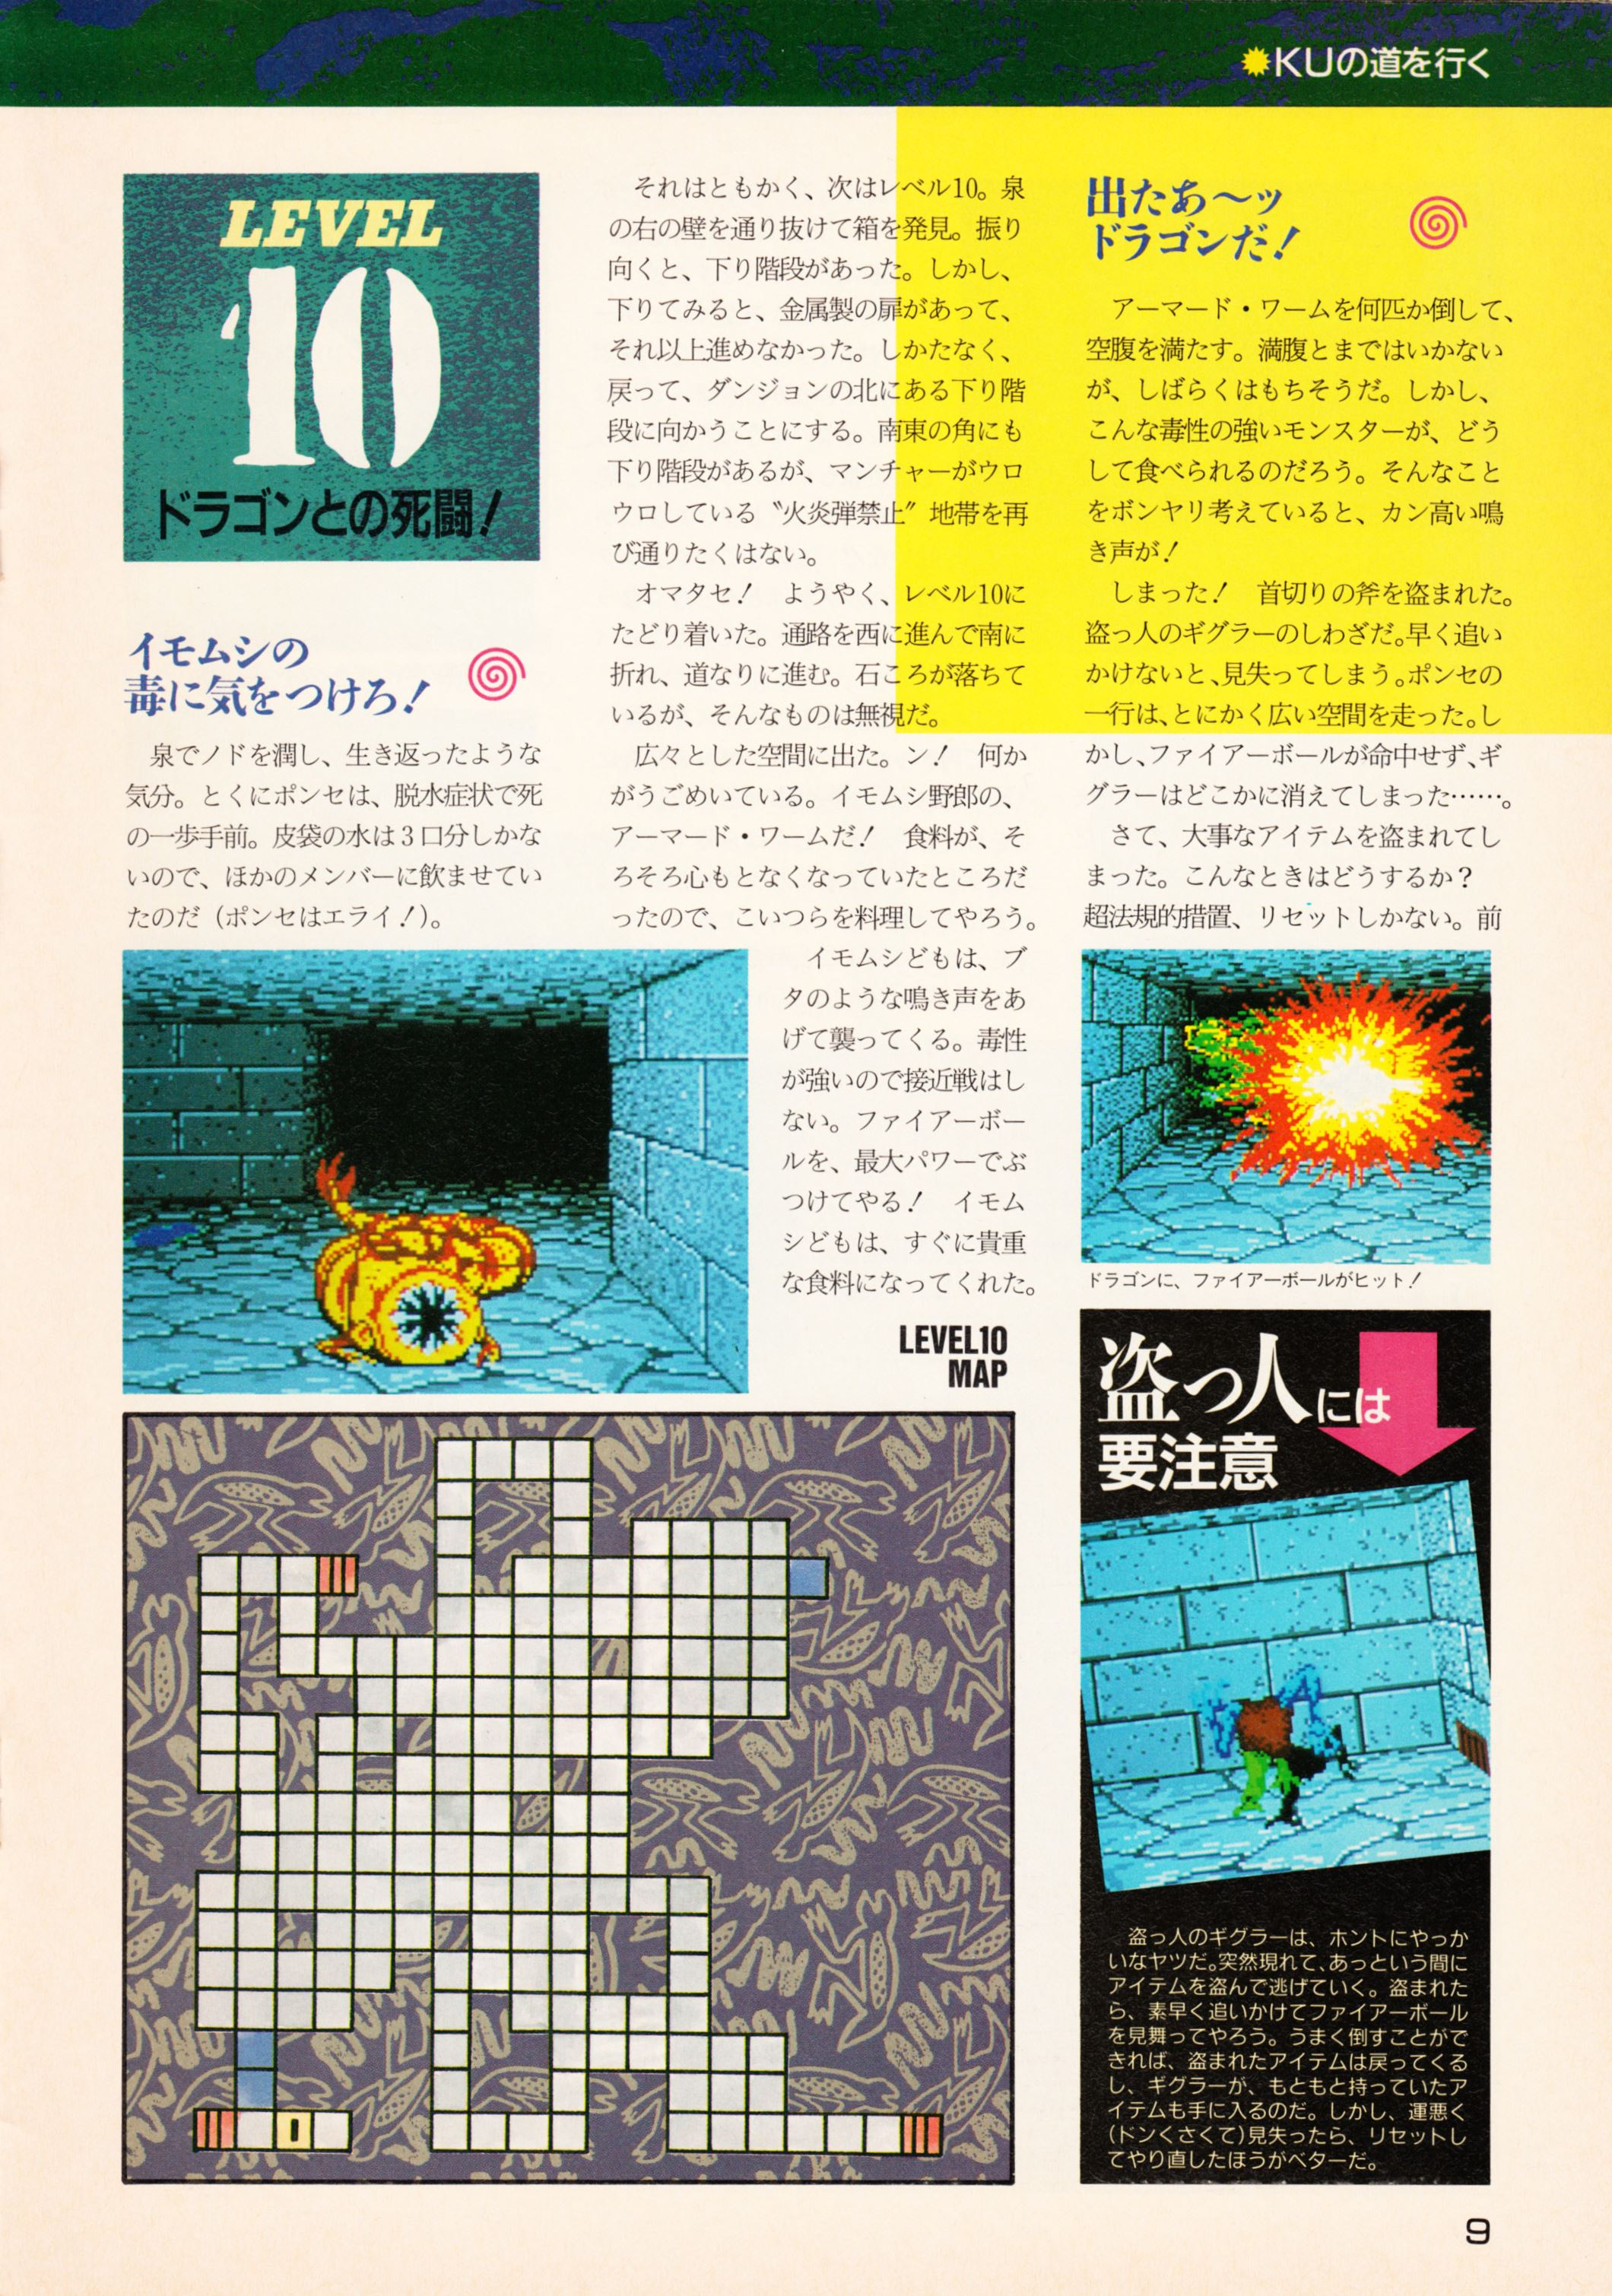 Supplement 1 - Chaos Strikes Back Companion Guide Guide published in Japanese magazine 'Popcom', Vol 9 No 2 01 February 1991, Page 11